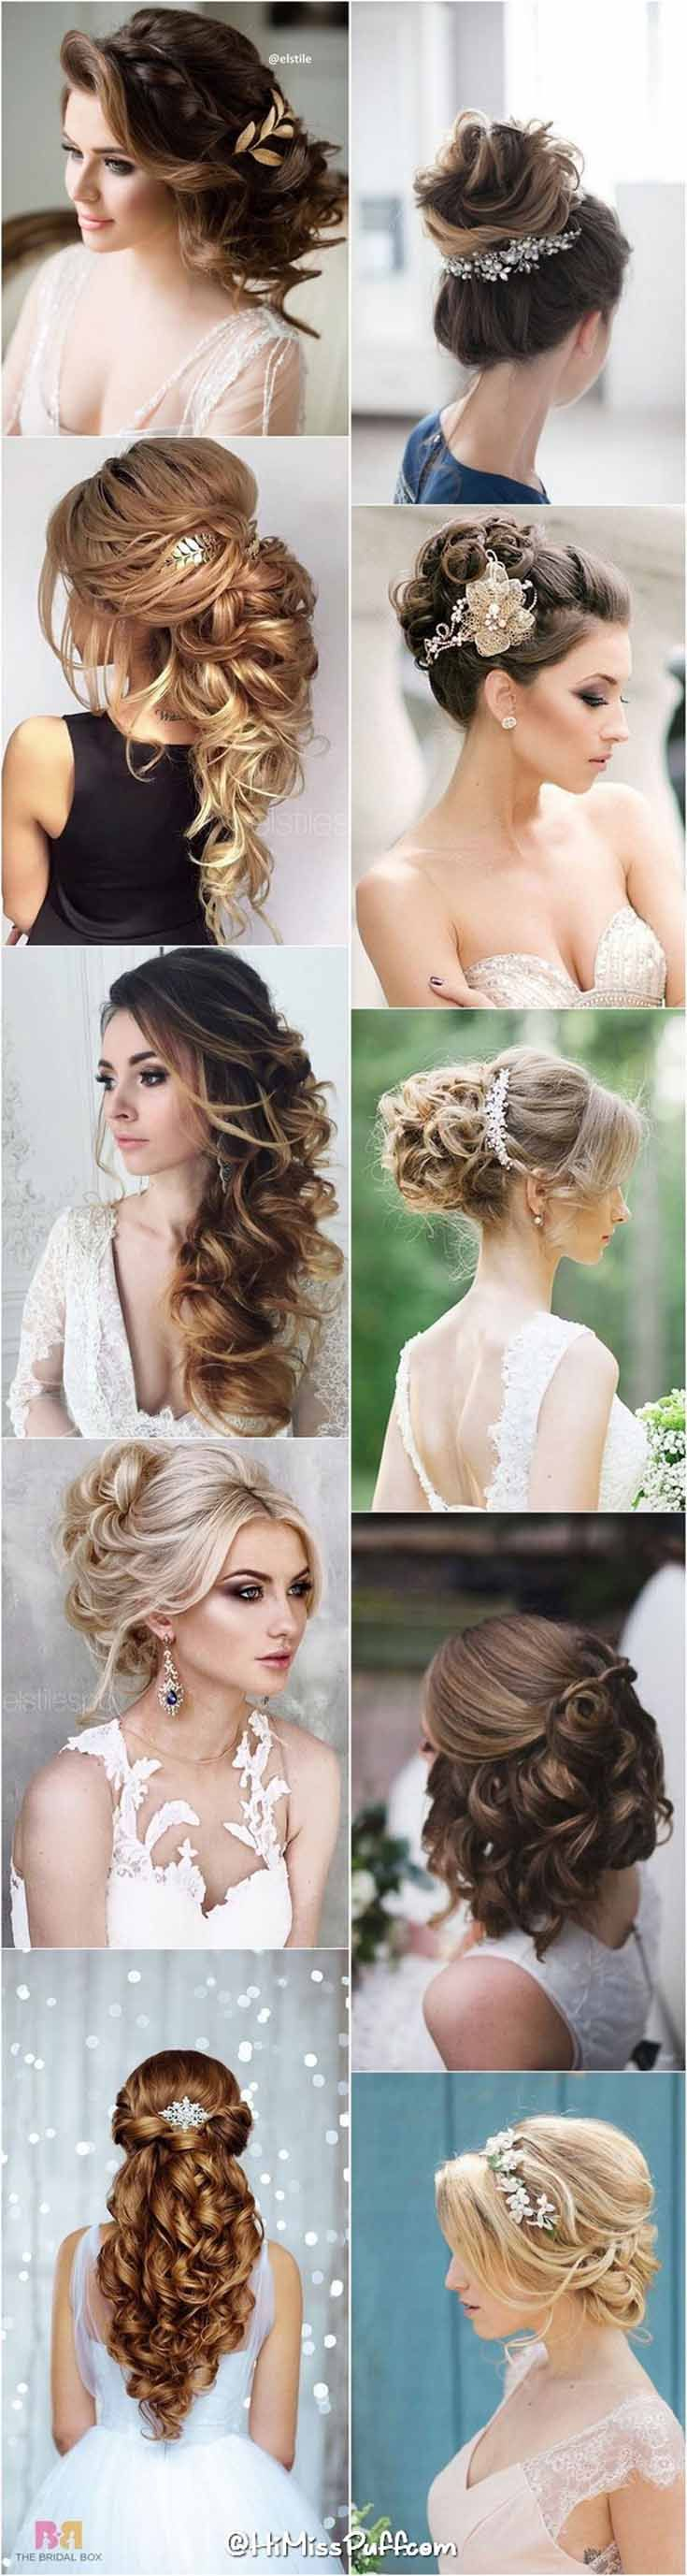 505 best Wedding Hair images on Pinterest